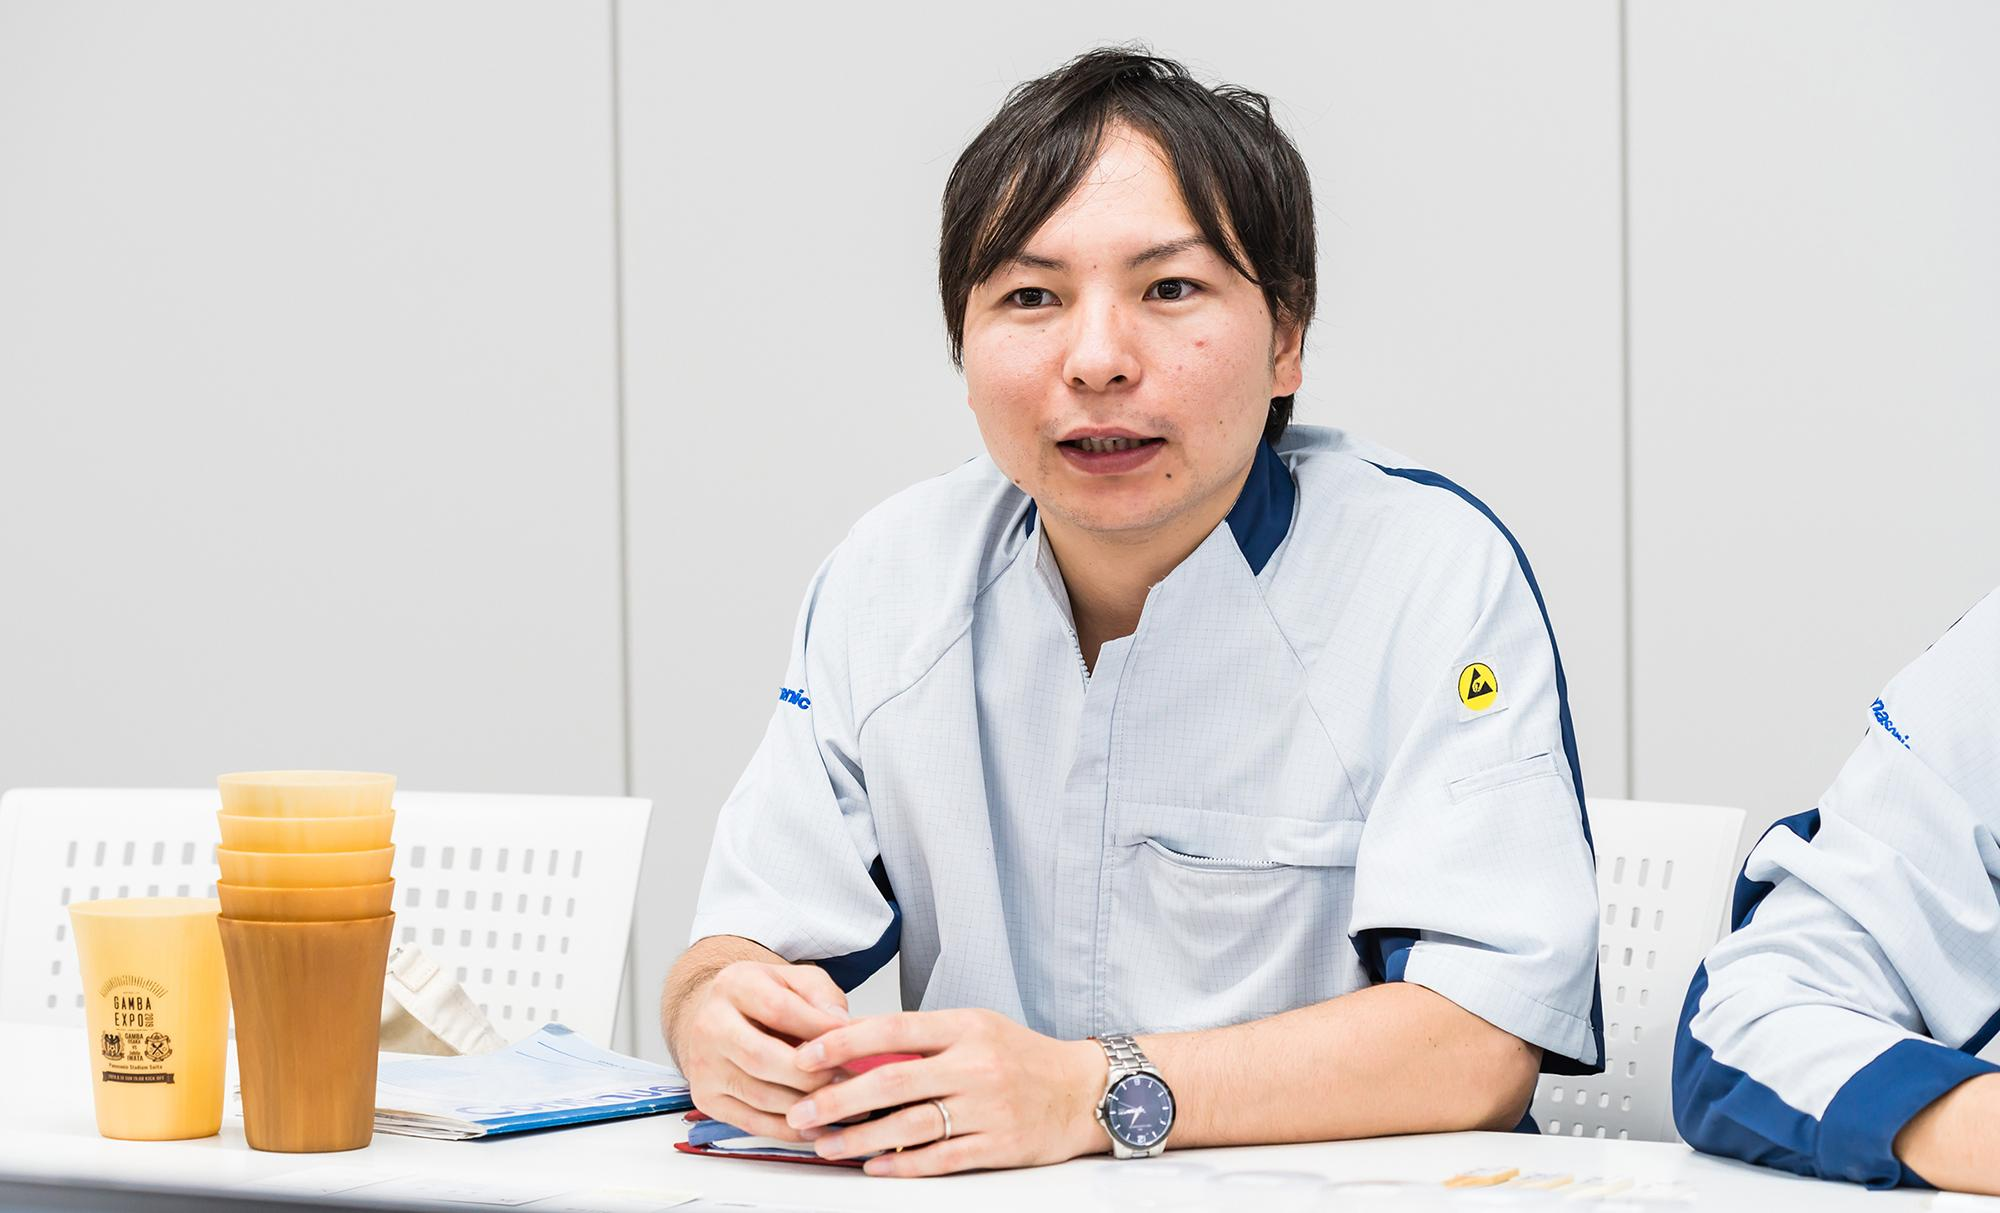 Photo: Shoma Nishino, Staff Engineer, Development Sect. No. 2, Mold & Die Technology Center, Advanced Molding Technology Dept., Manufacturing Innovation Division, Panasonic Corporation